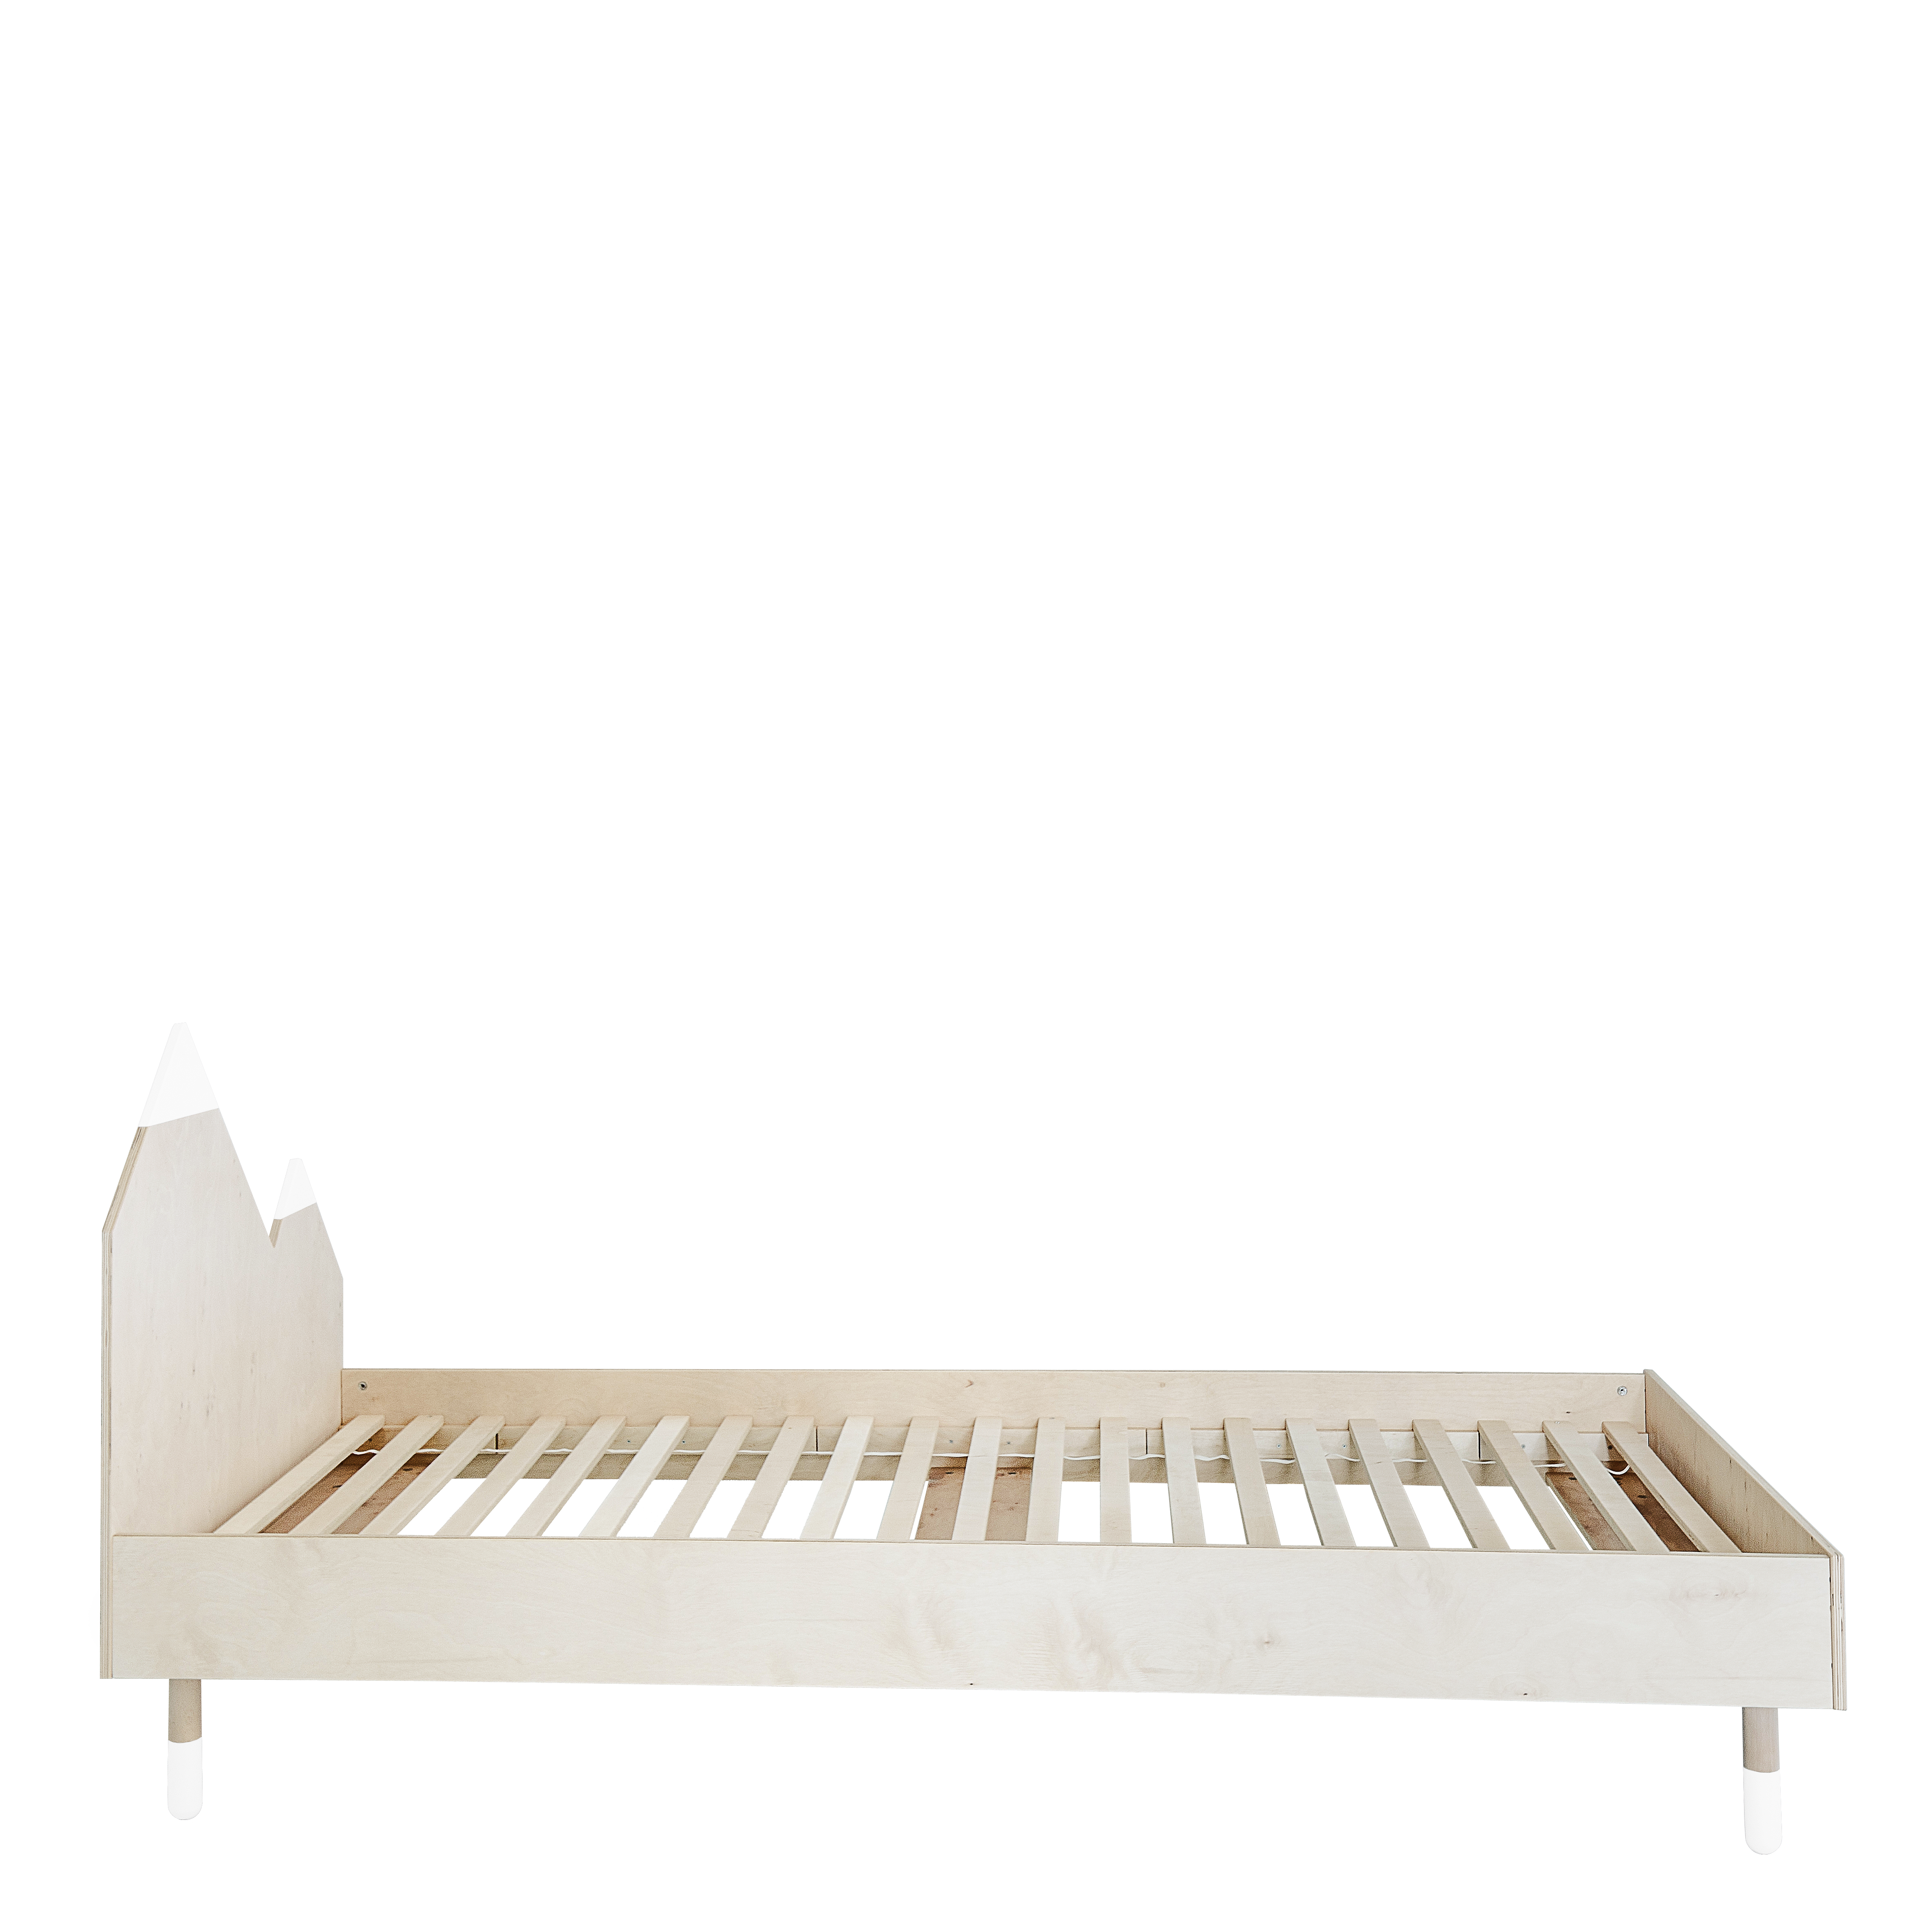 Transparent pianos bed. X cm mountains collection